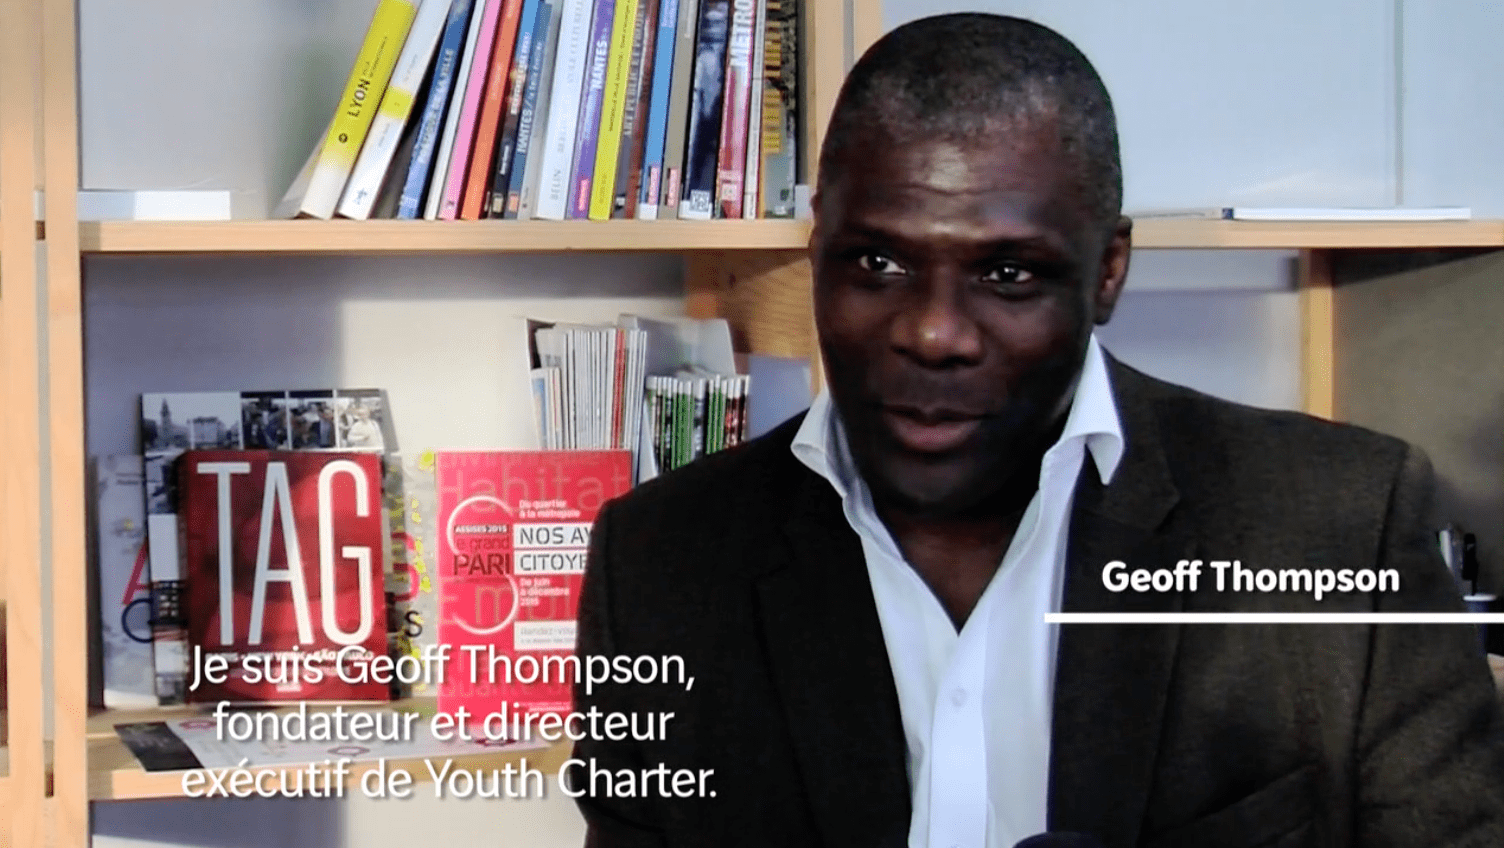 The Future of Public Spaces - Geoff Thompson, Youth Charter